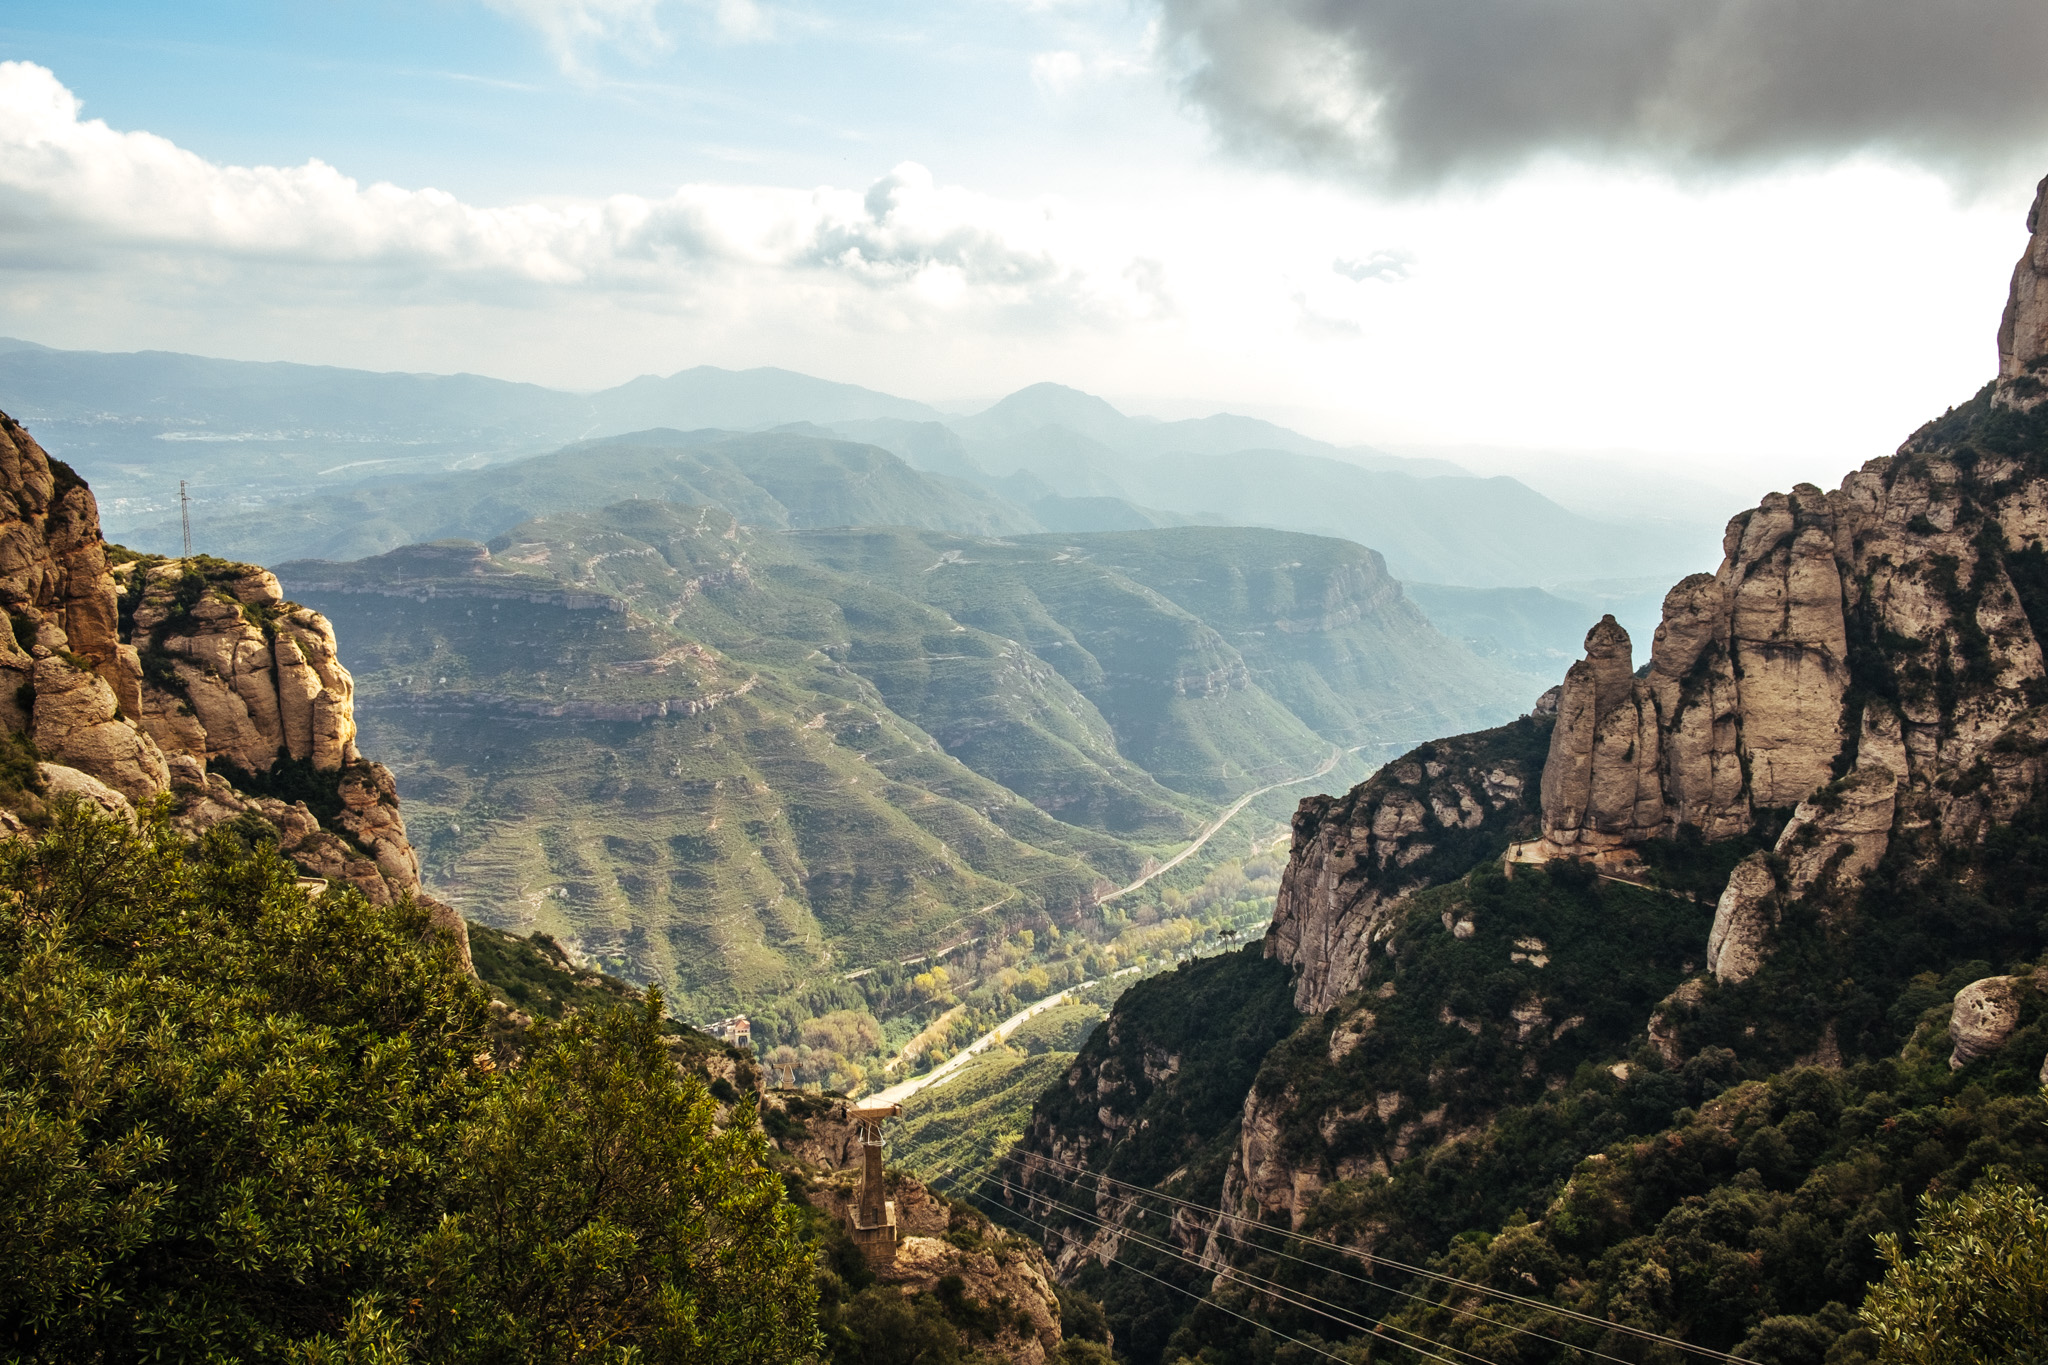 The view from Montserrat.